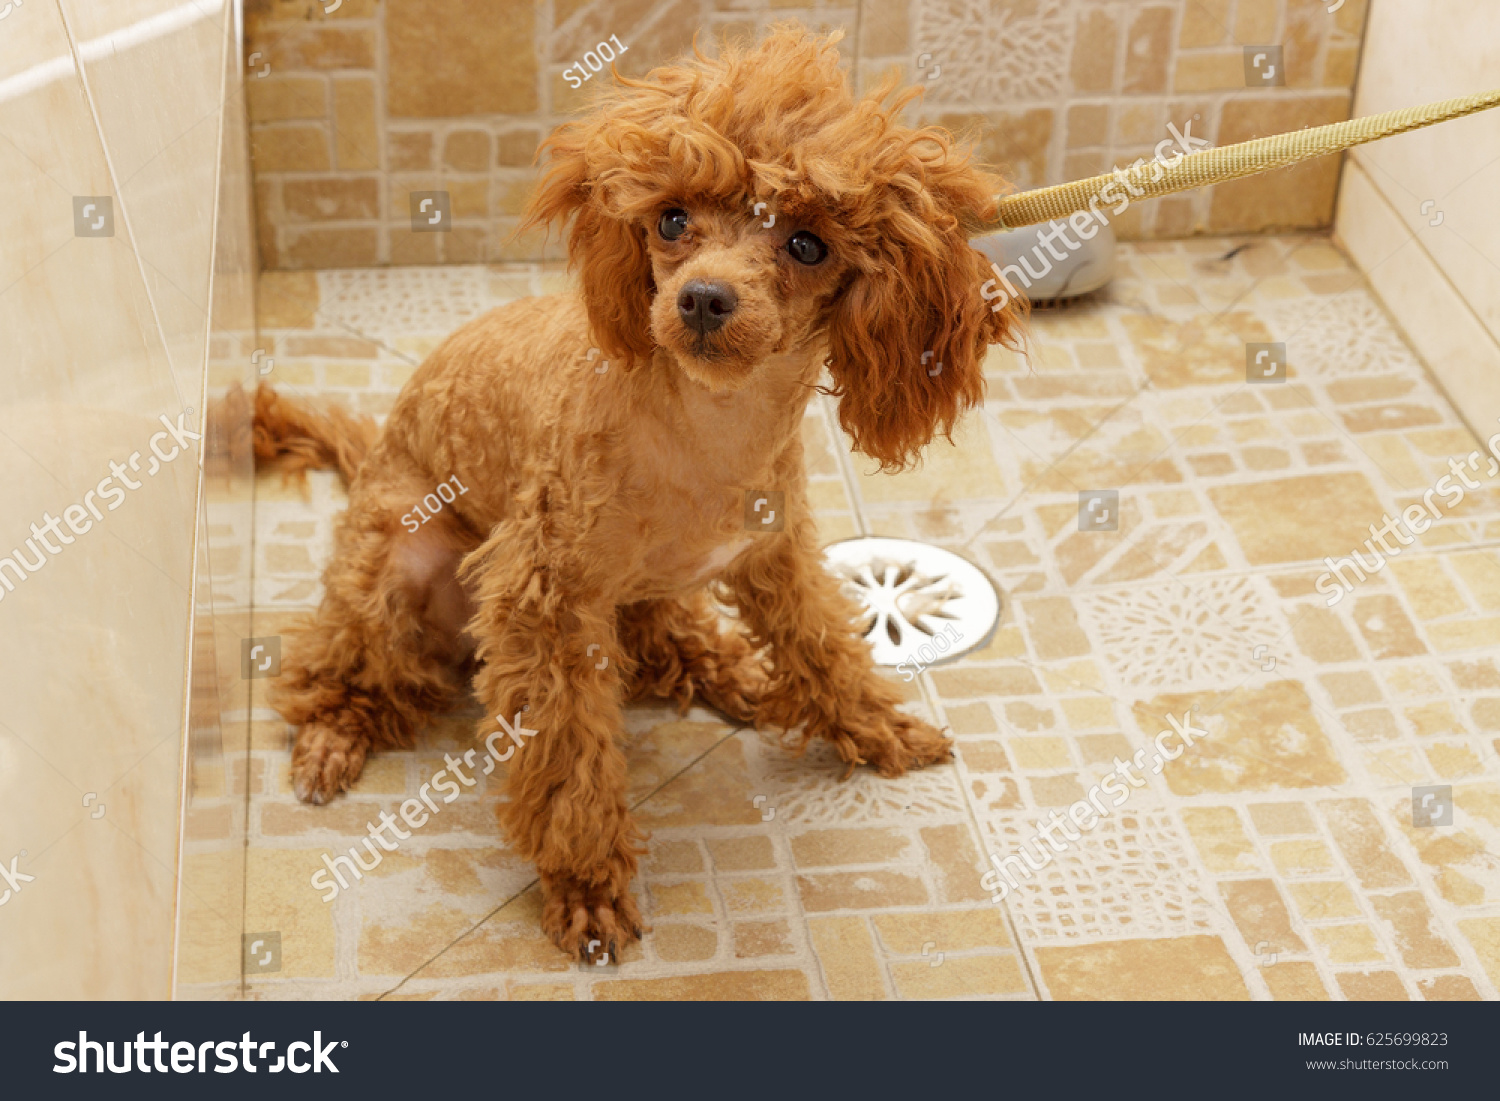 Toy Poodle Waiting Washing Shower During Stock Photo Edit Now